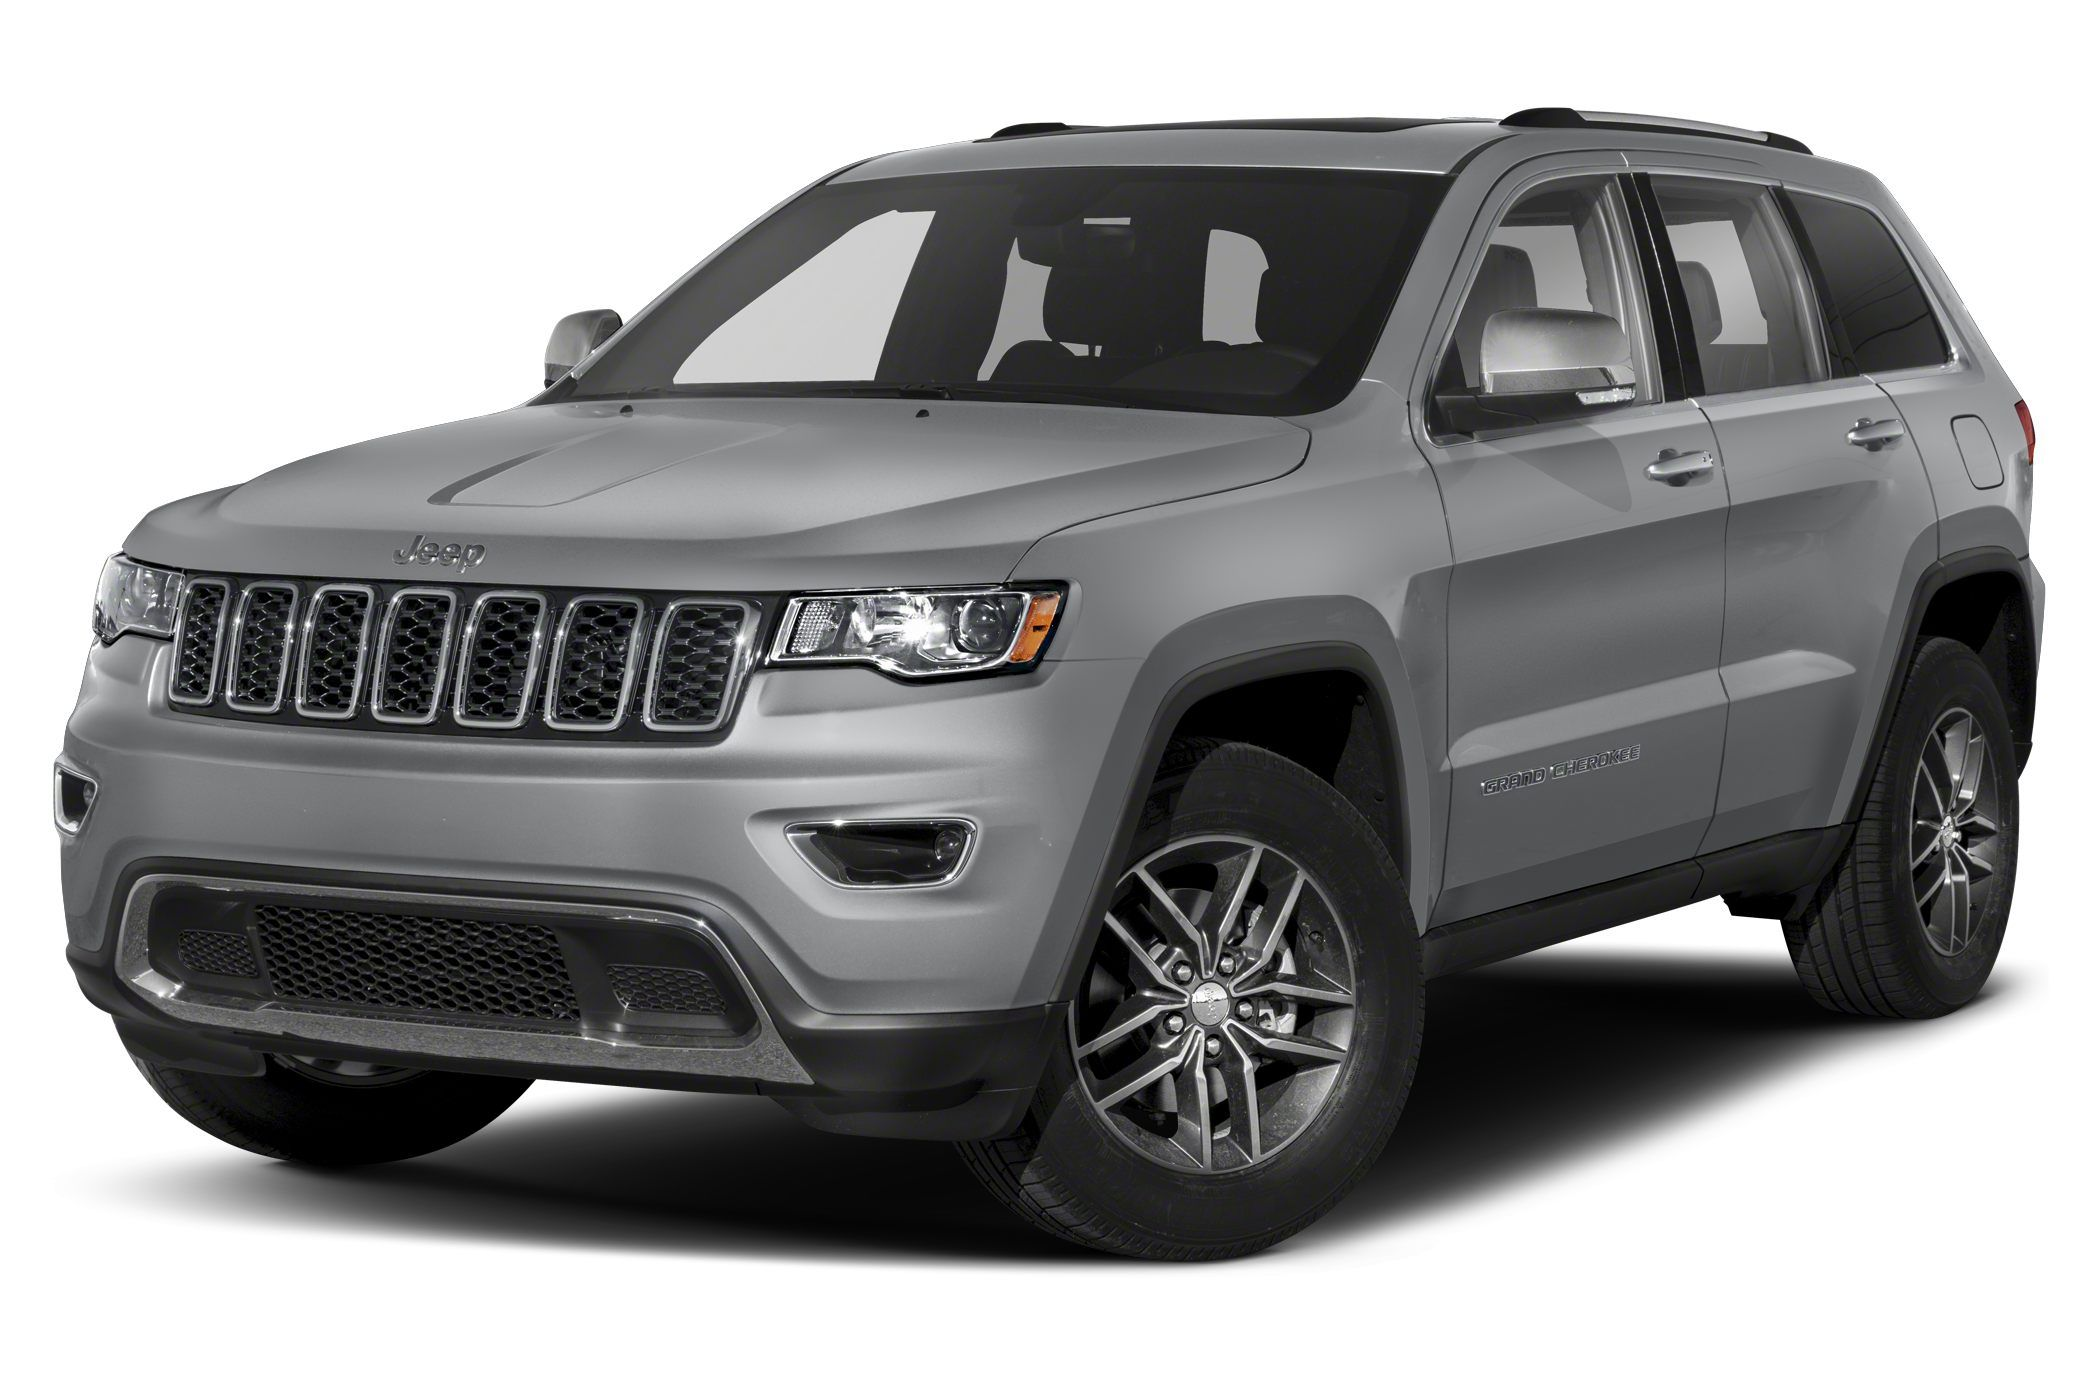 2019 Jeep Grand Cherokee Trailhawk 4x4 Towing Capacity Feels Free